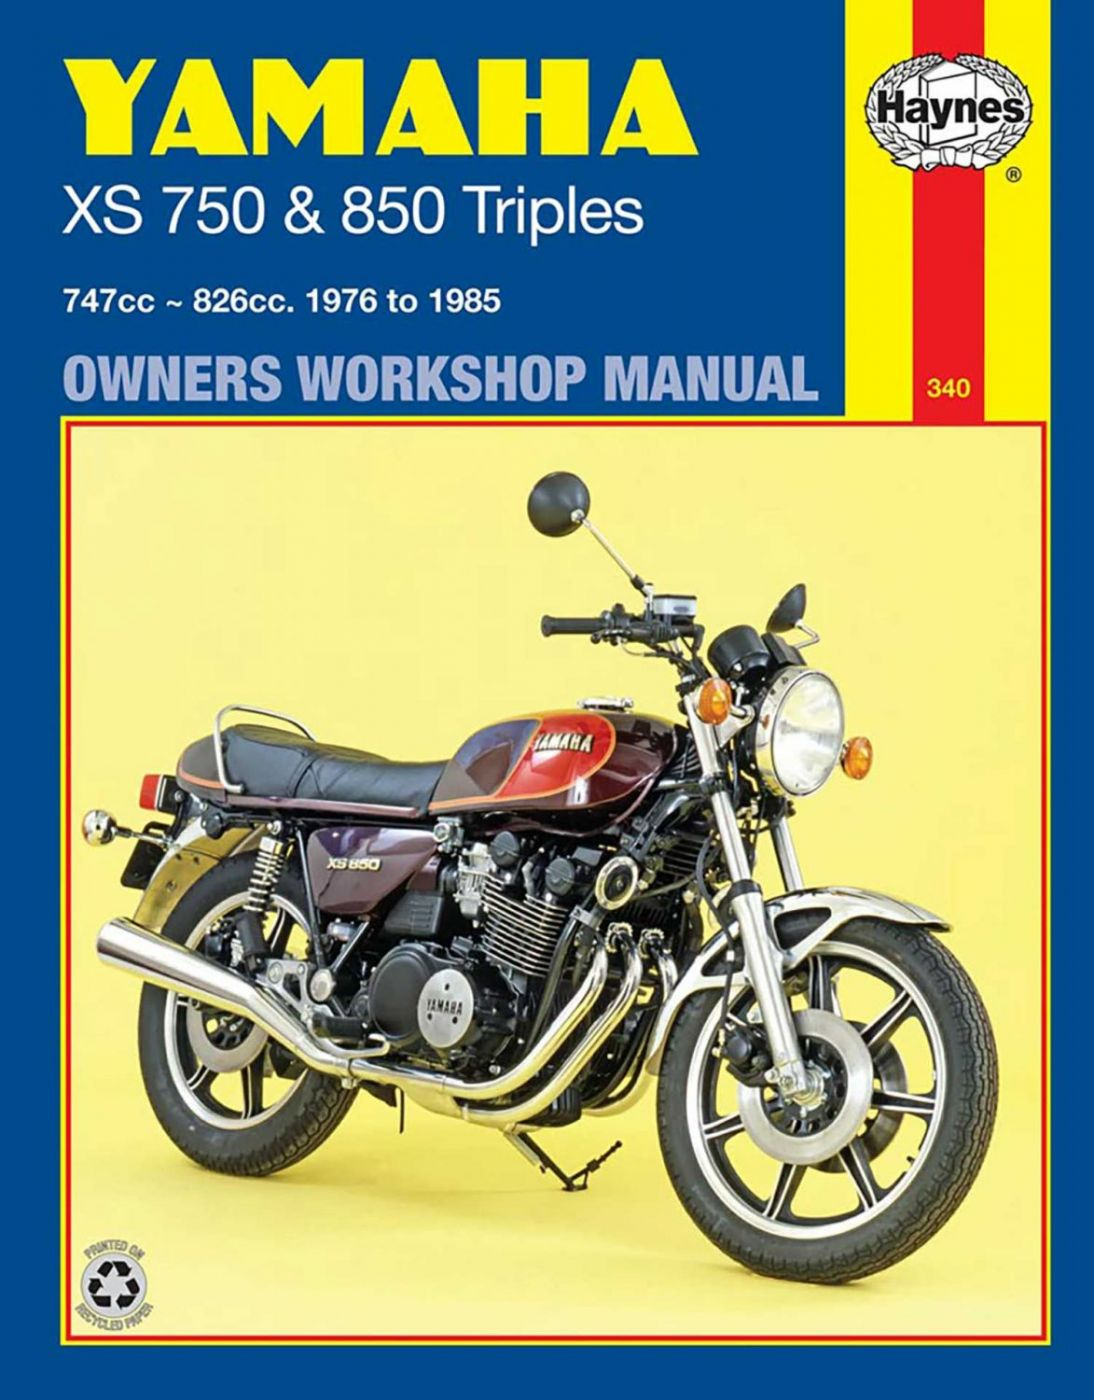 Haynes Manuals - 680340Y image